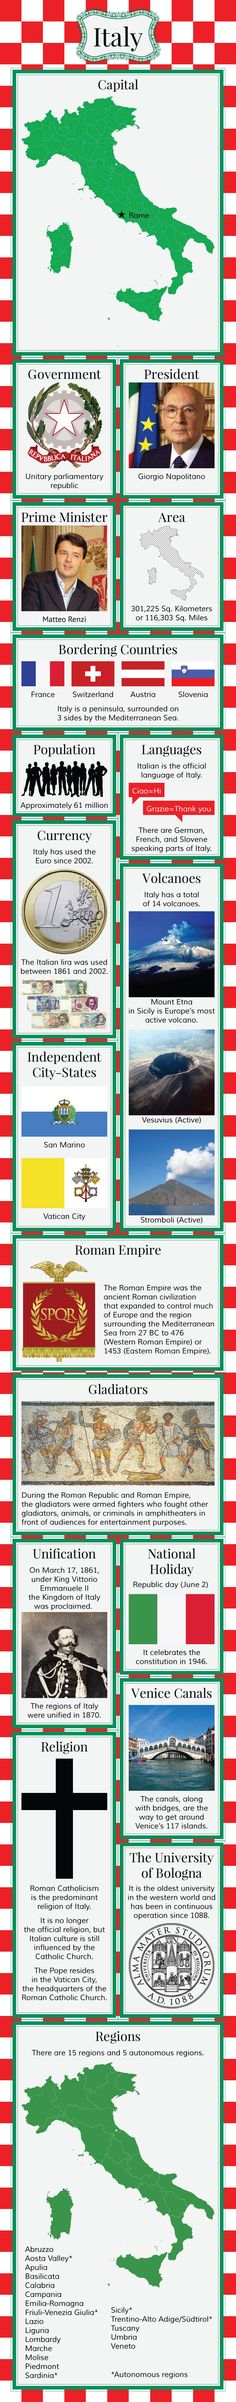 Infographic of Italy Facts